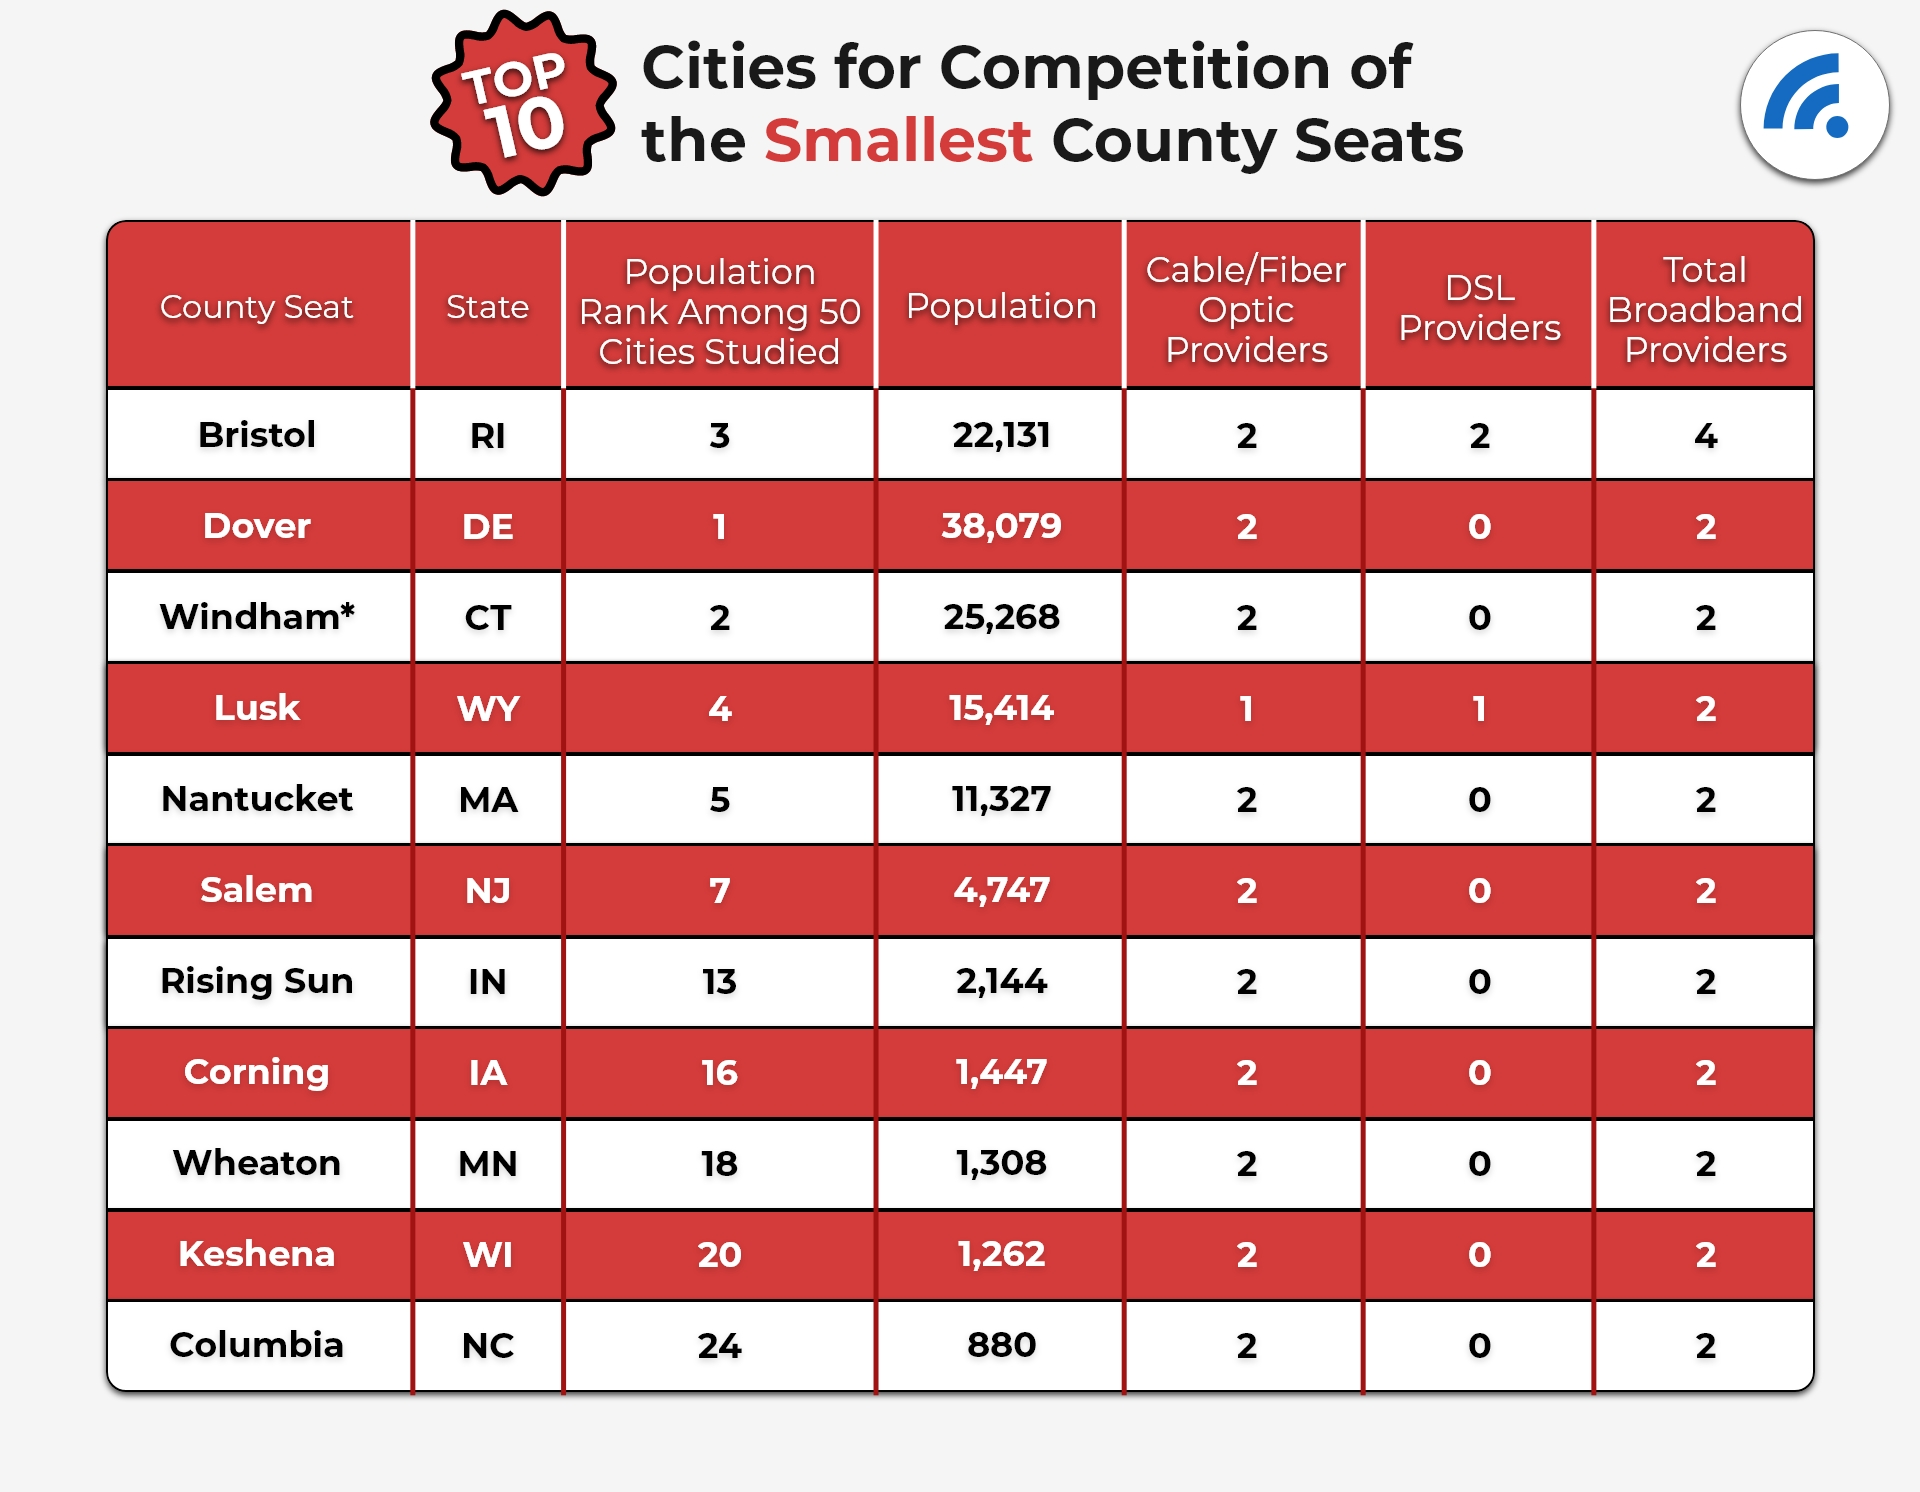 Top 10 Cities for Competition of the Smallest County Seats